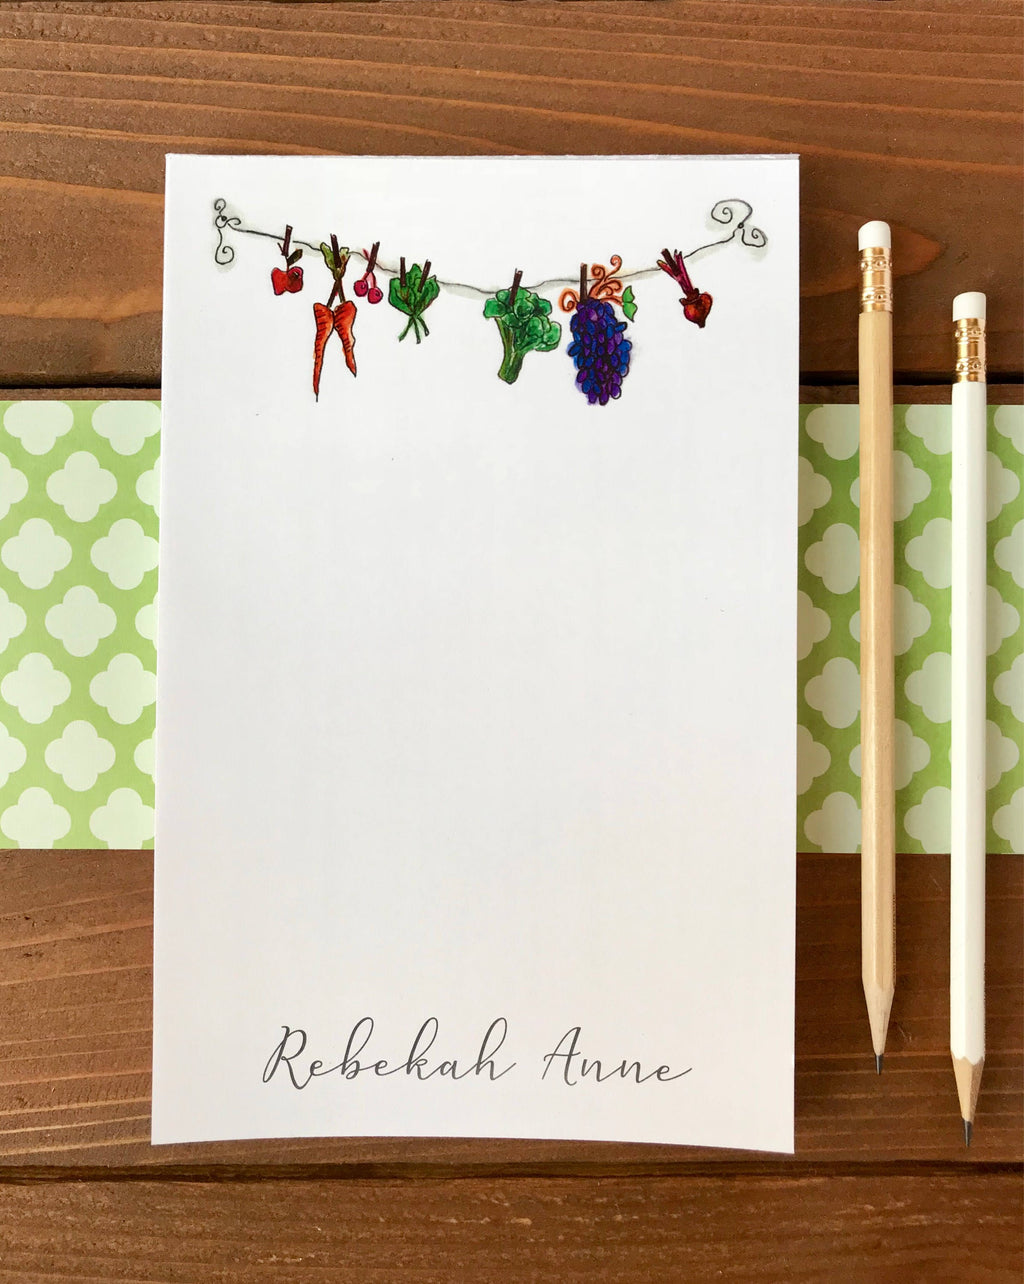 Clothesline Veggies Notepad - Kitchen Notepad, Fruits and Veggies, Hostess Gift, Vegetable Notepad, Consultant Gift, Fruit Art - 5.5 x 8.5